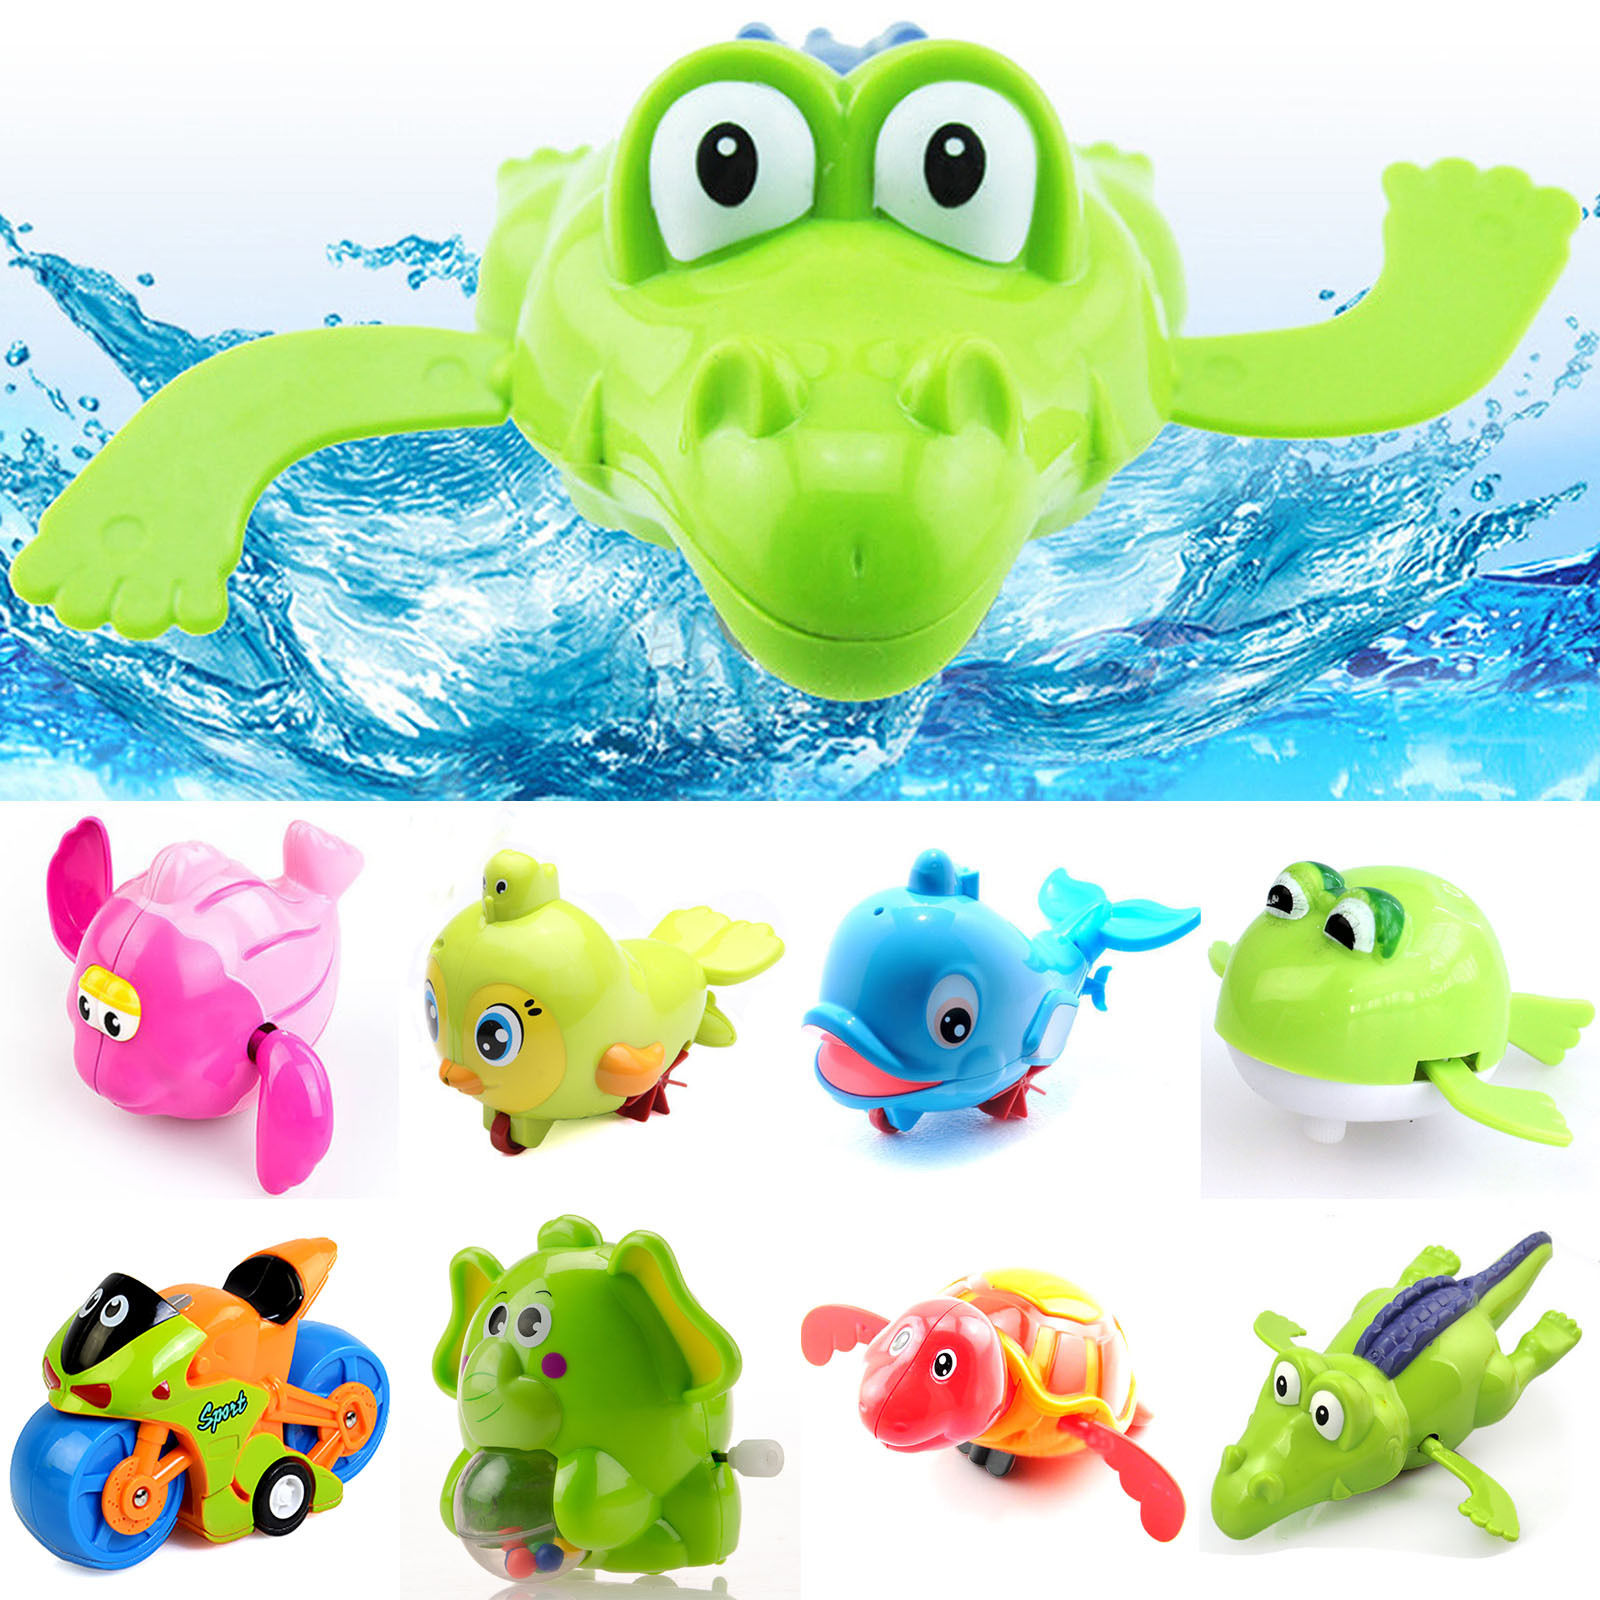 Toys images clip art  High New Windup Bathing Animal Toys for Baby Infant Kids Children